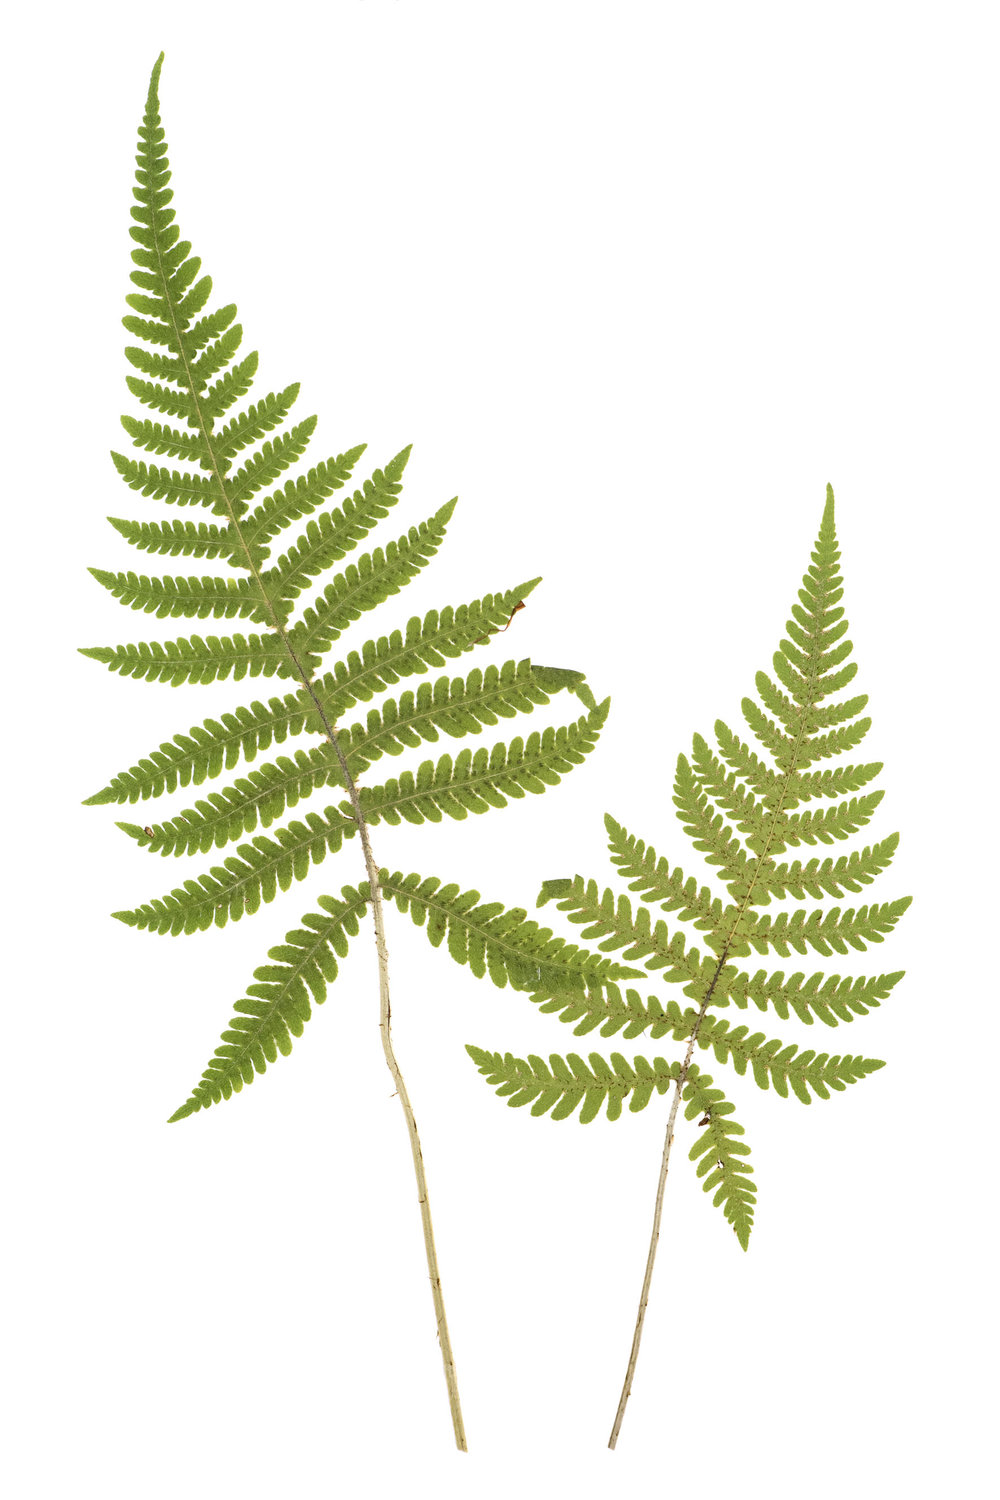 New! Phegopteris connectilis / Long Beech Fern